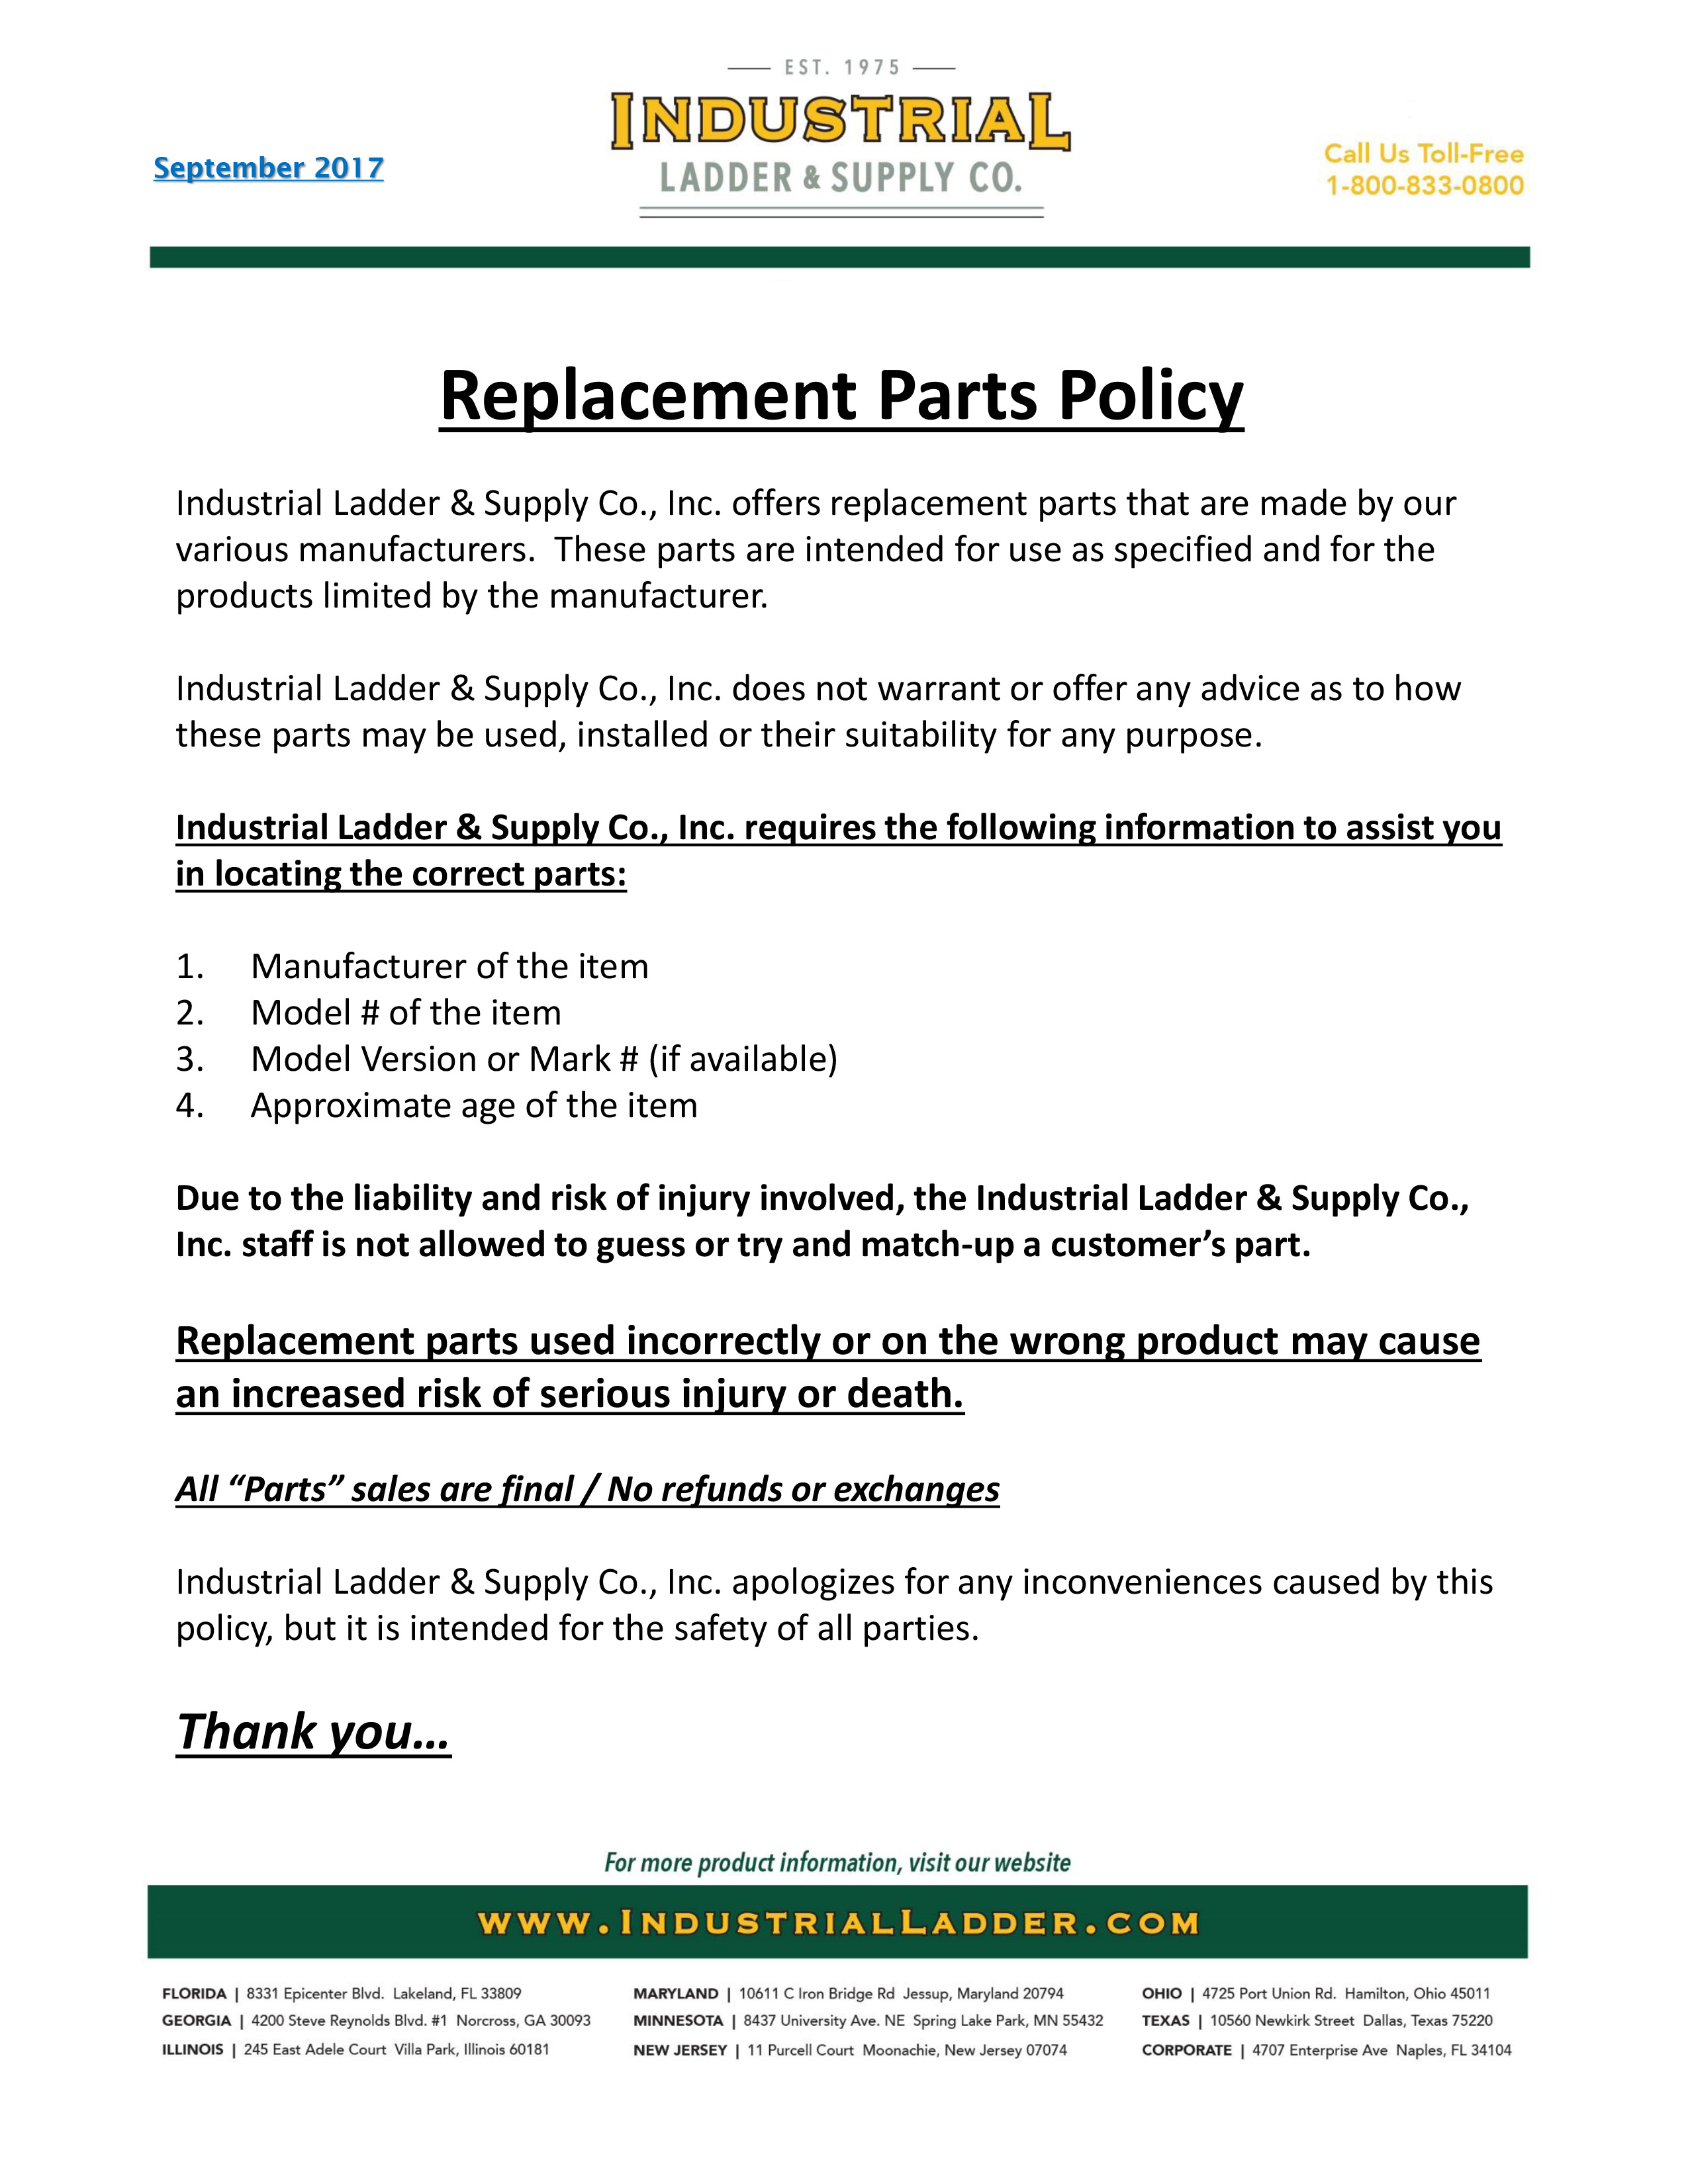 Industrial Ladder & Supply Co. Parts Policy